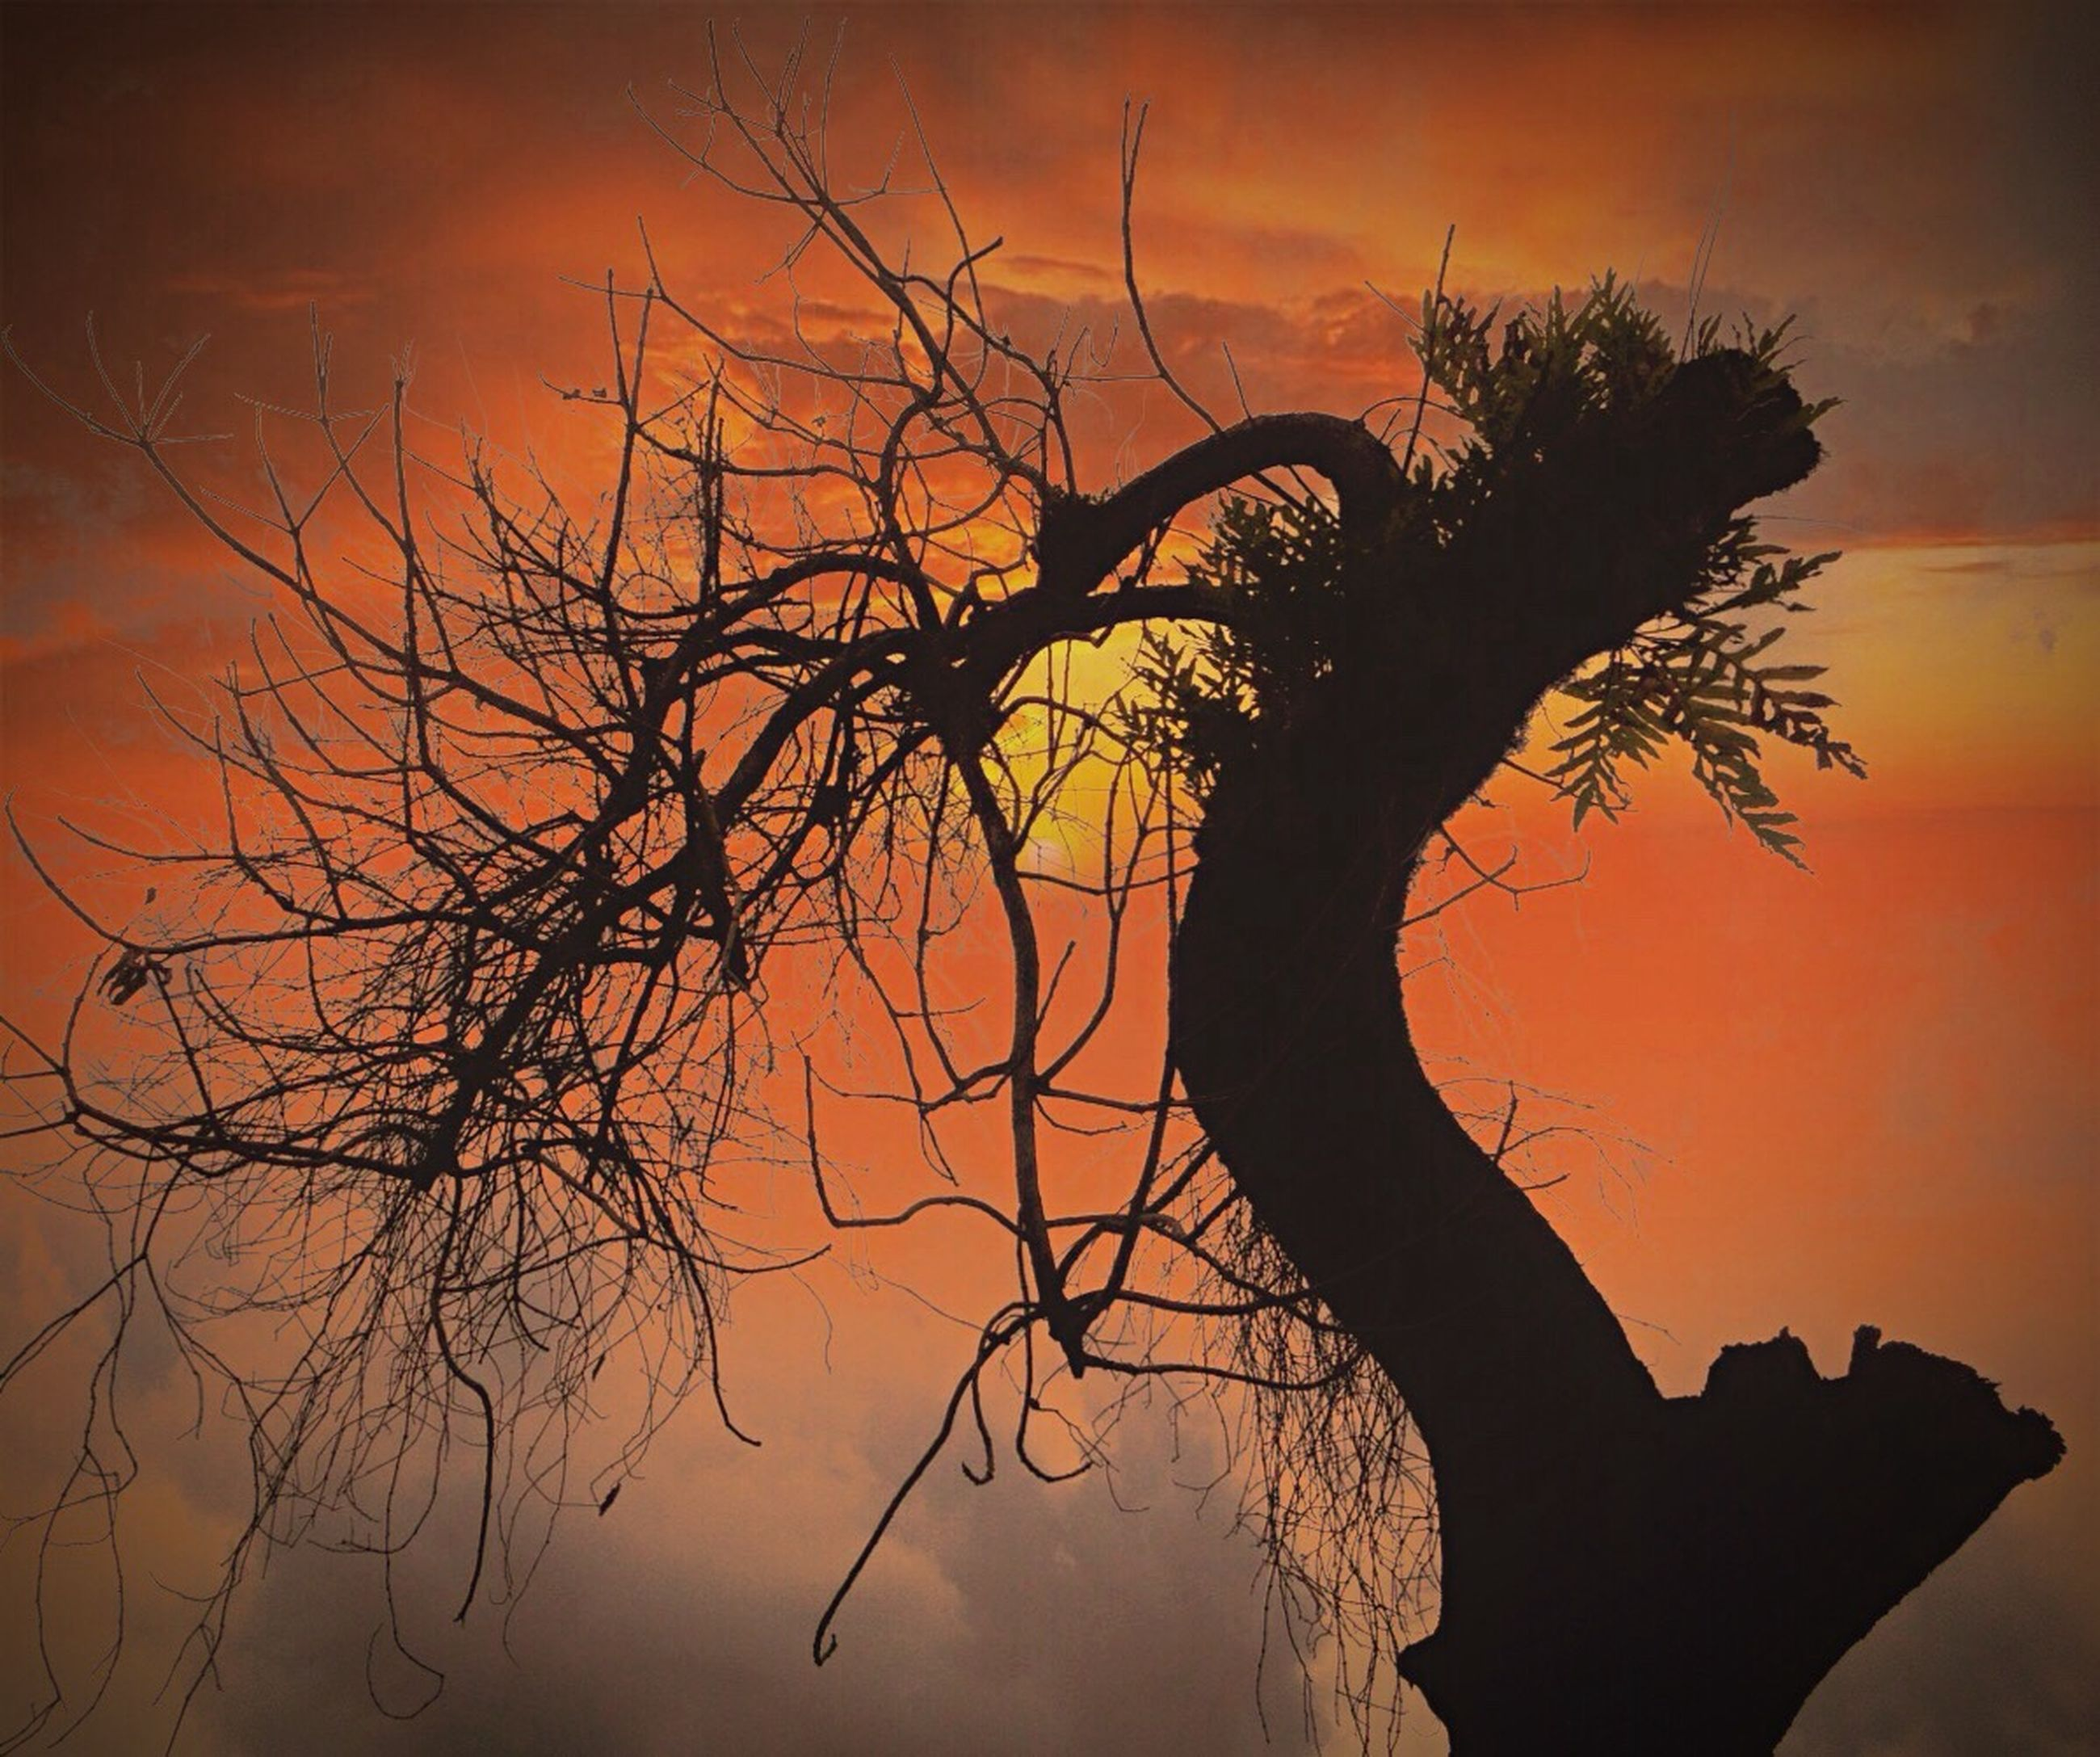 sunset, silhouette, tree, branch, nature, beauty in nature, sky, no people, backgrounds, outdoors, close-up